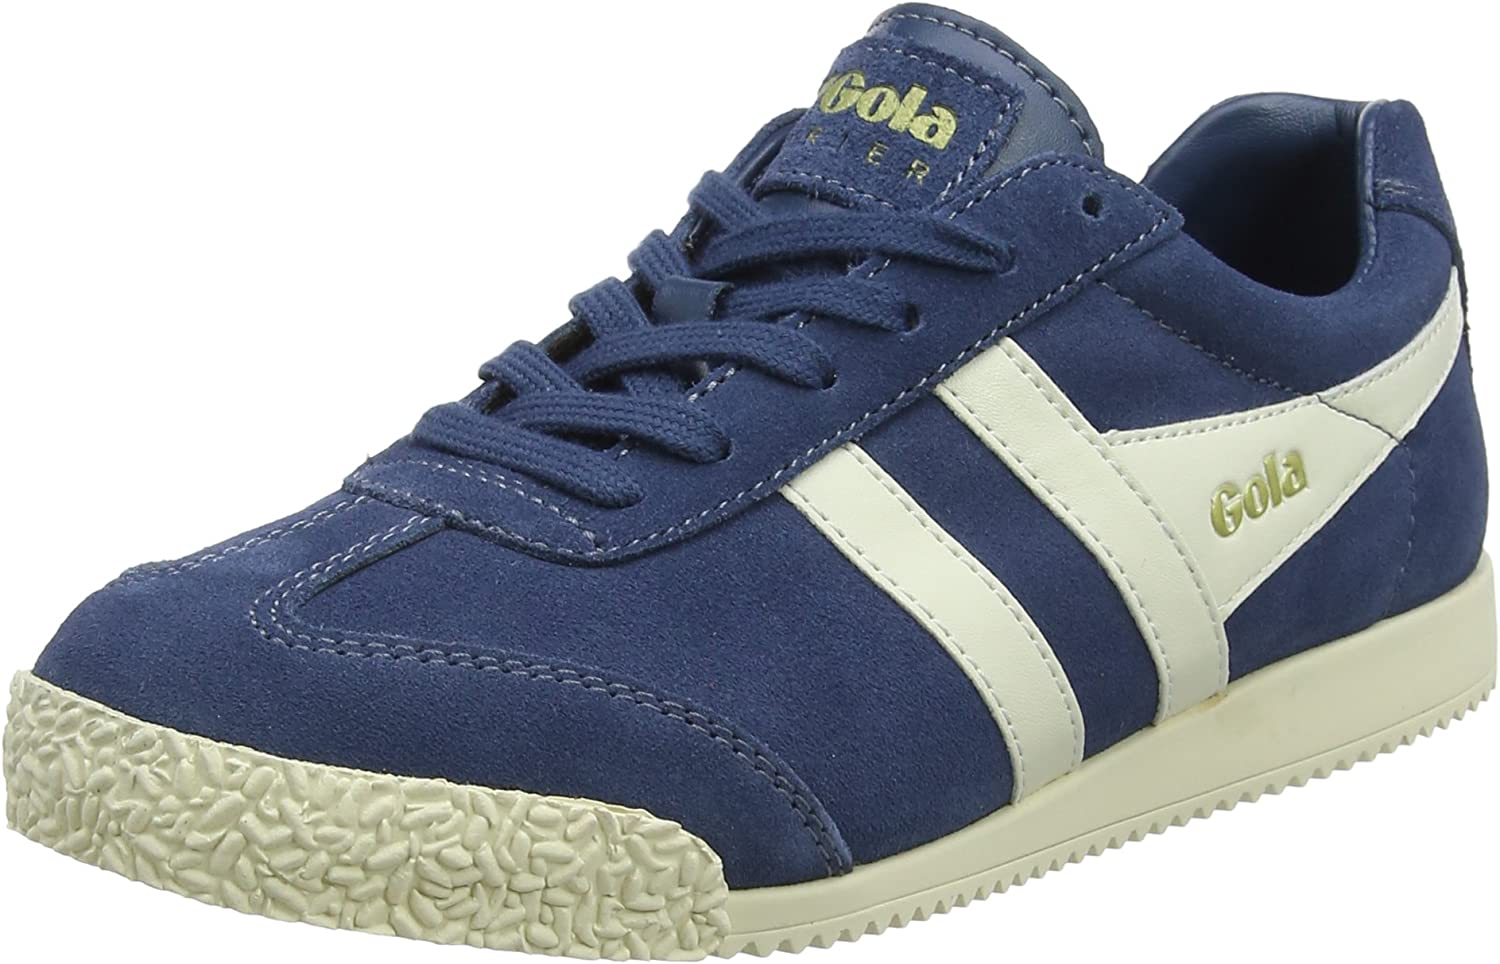 Gola Women Harrier Suede Baltic Off White Sneakers